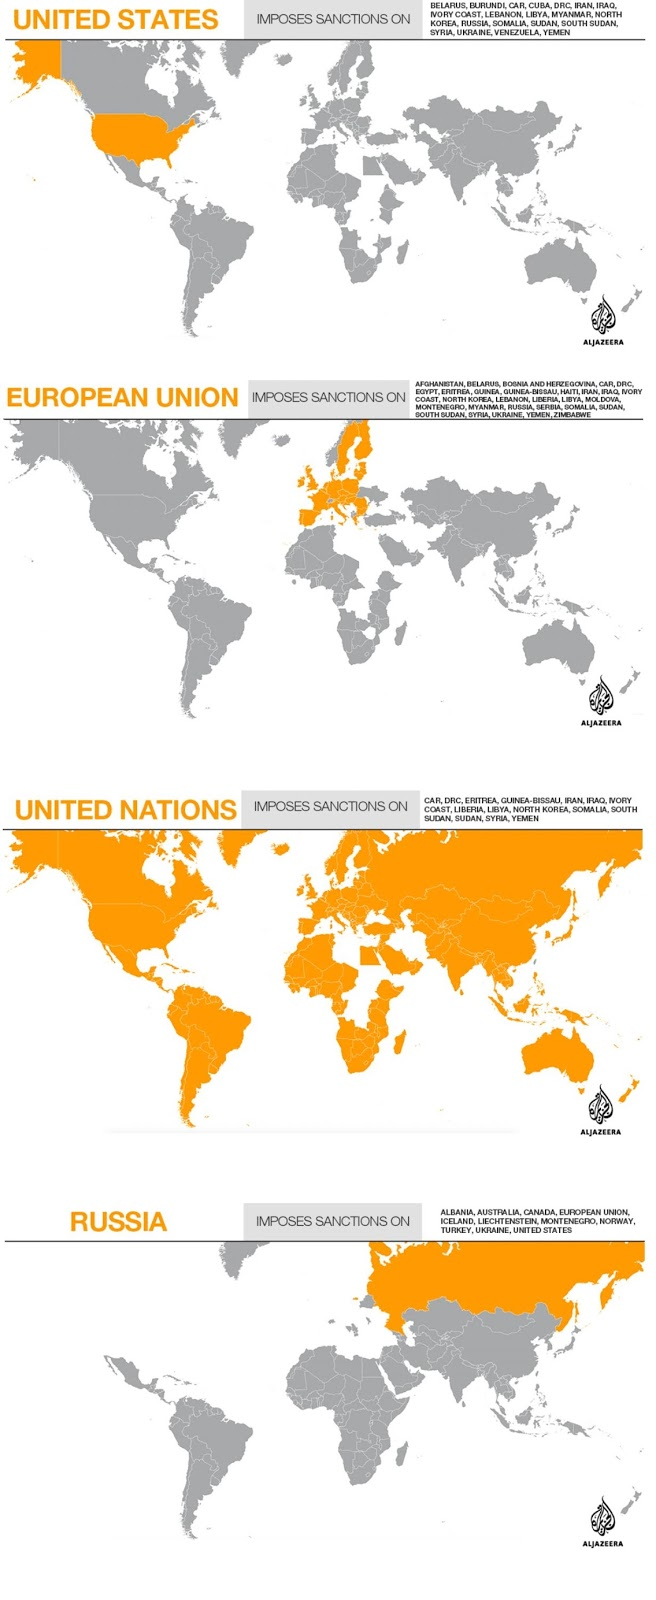 Countries sanctioned by the US, the EU, the UN & Russia